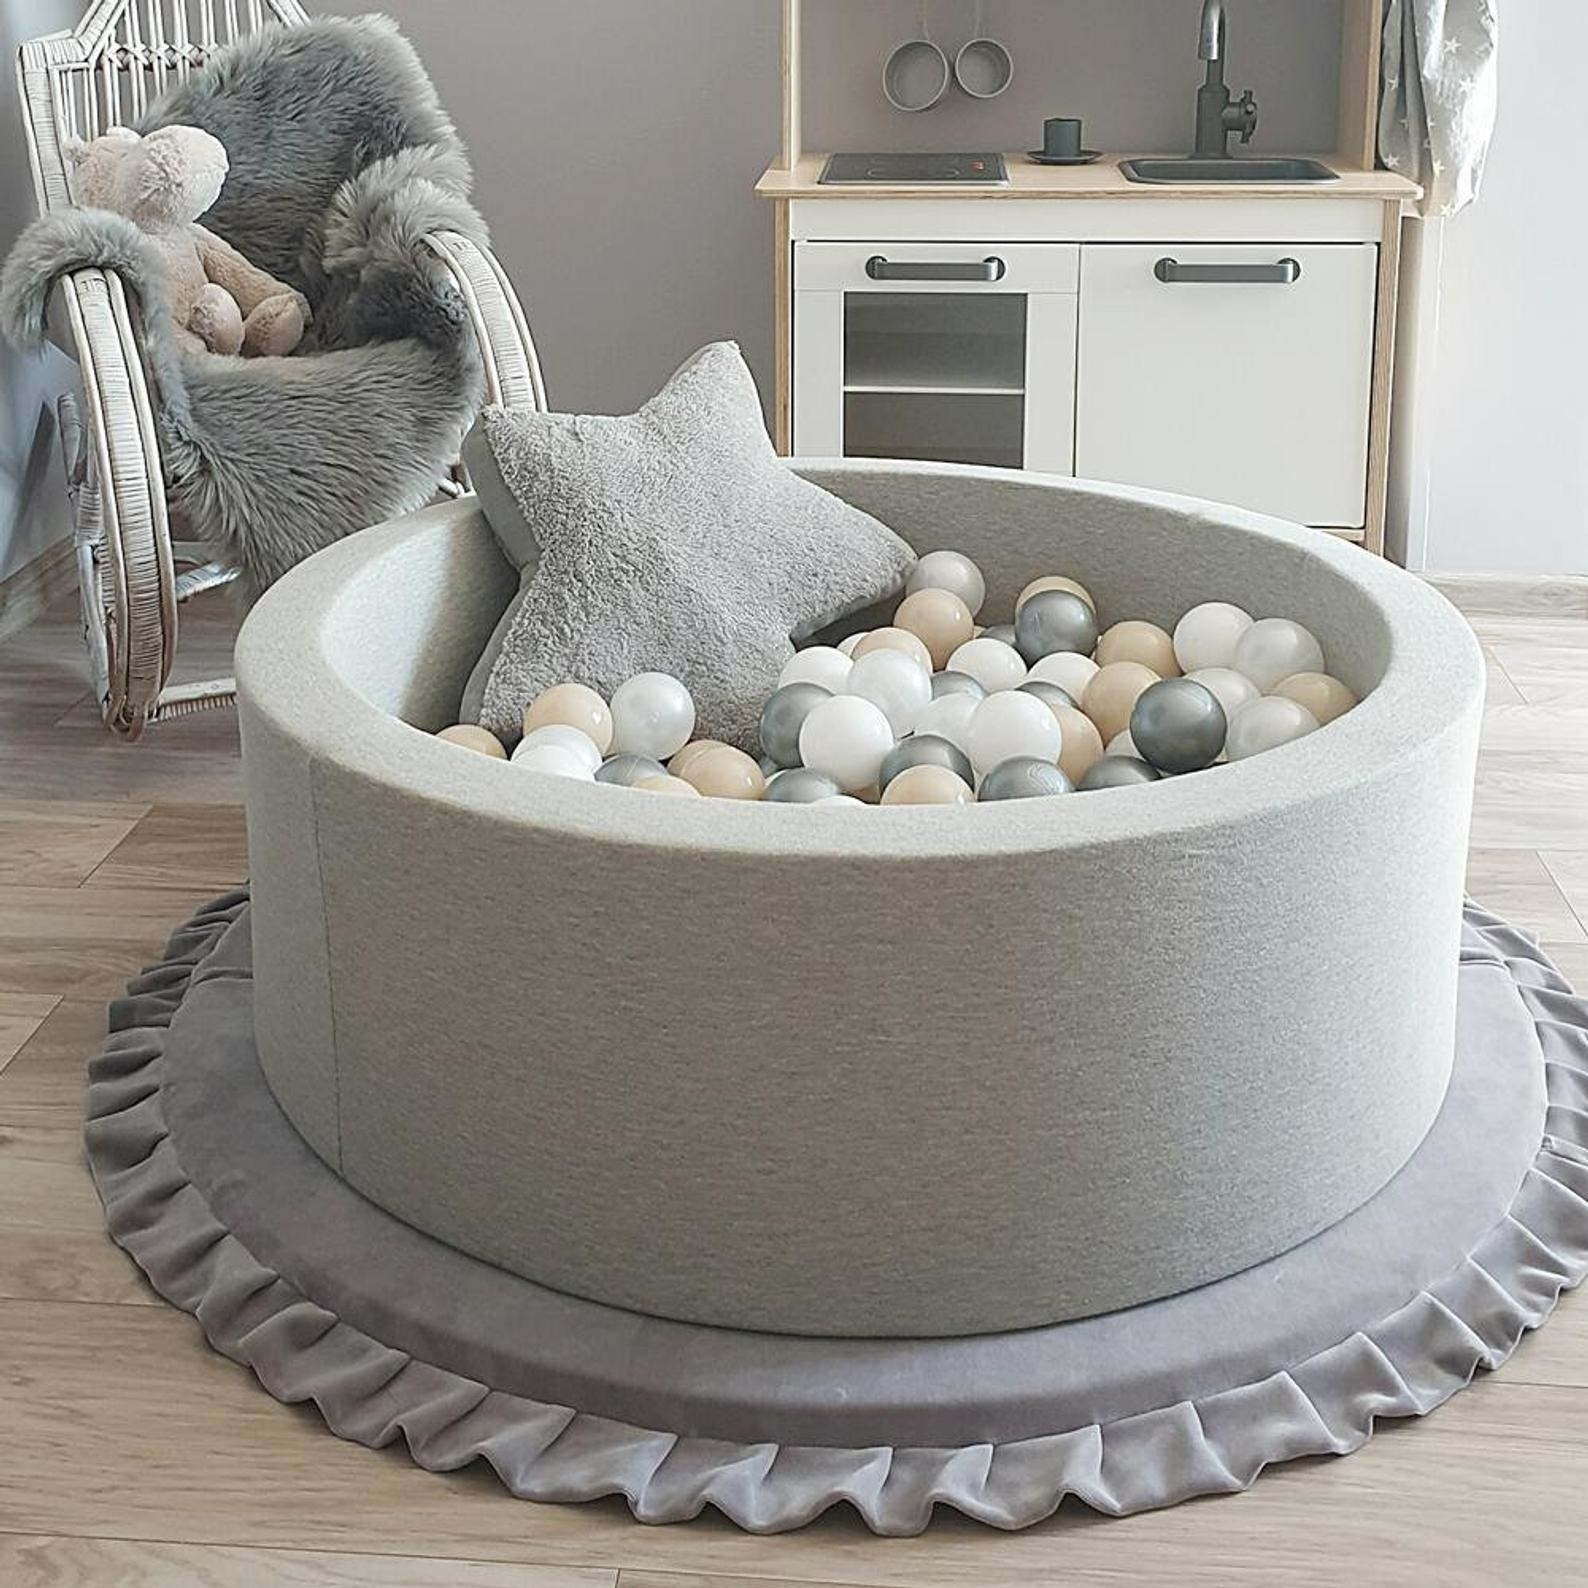 The grey foam ball pit filled with balls